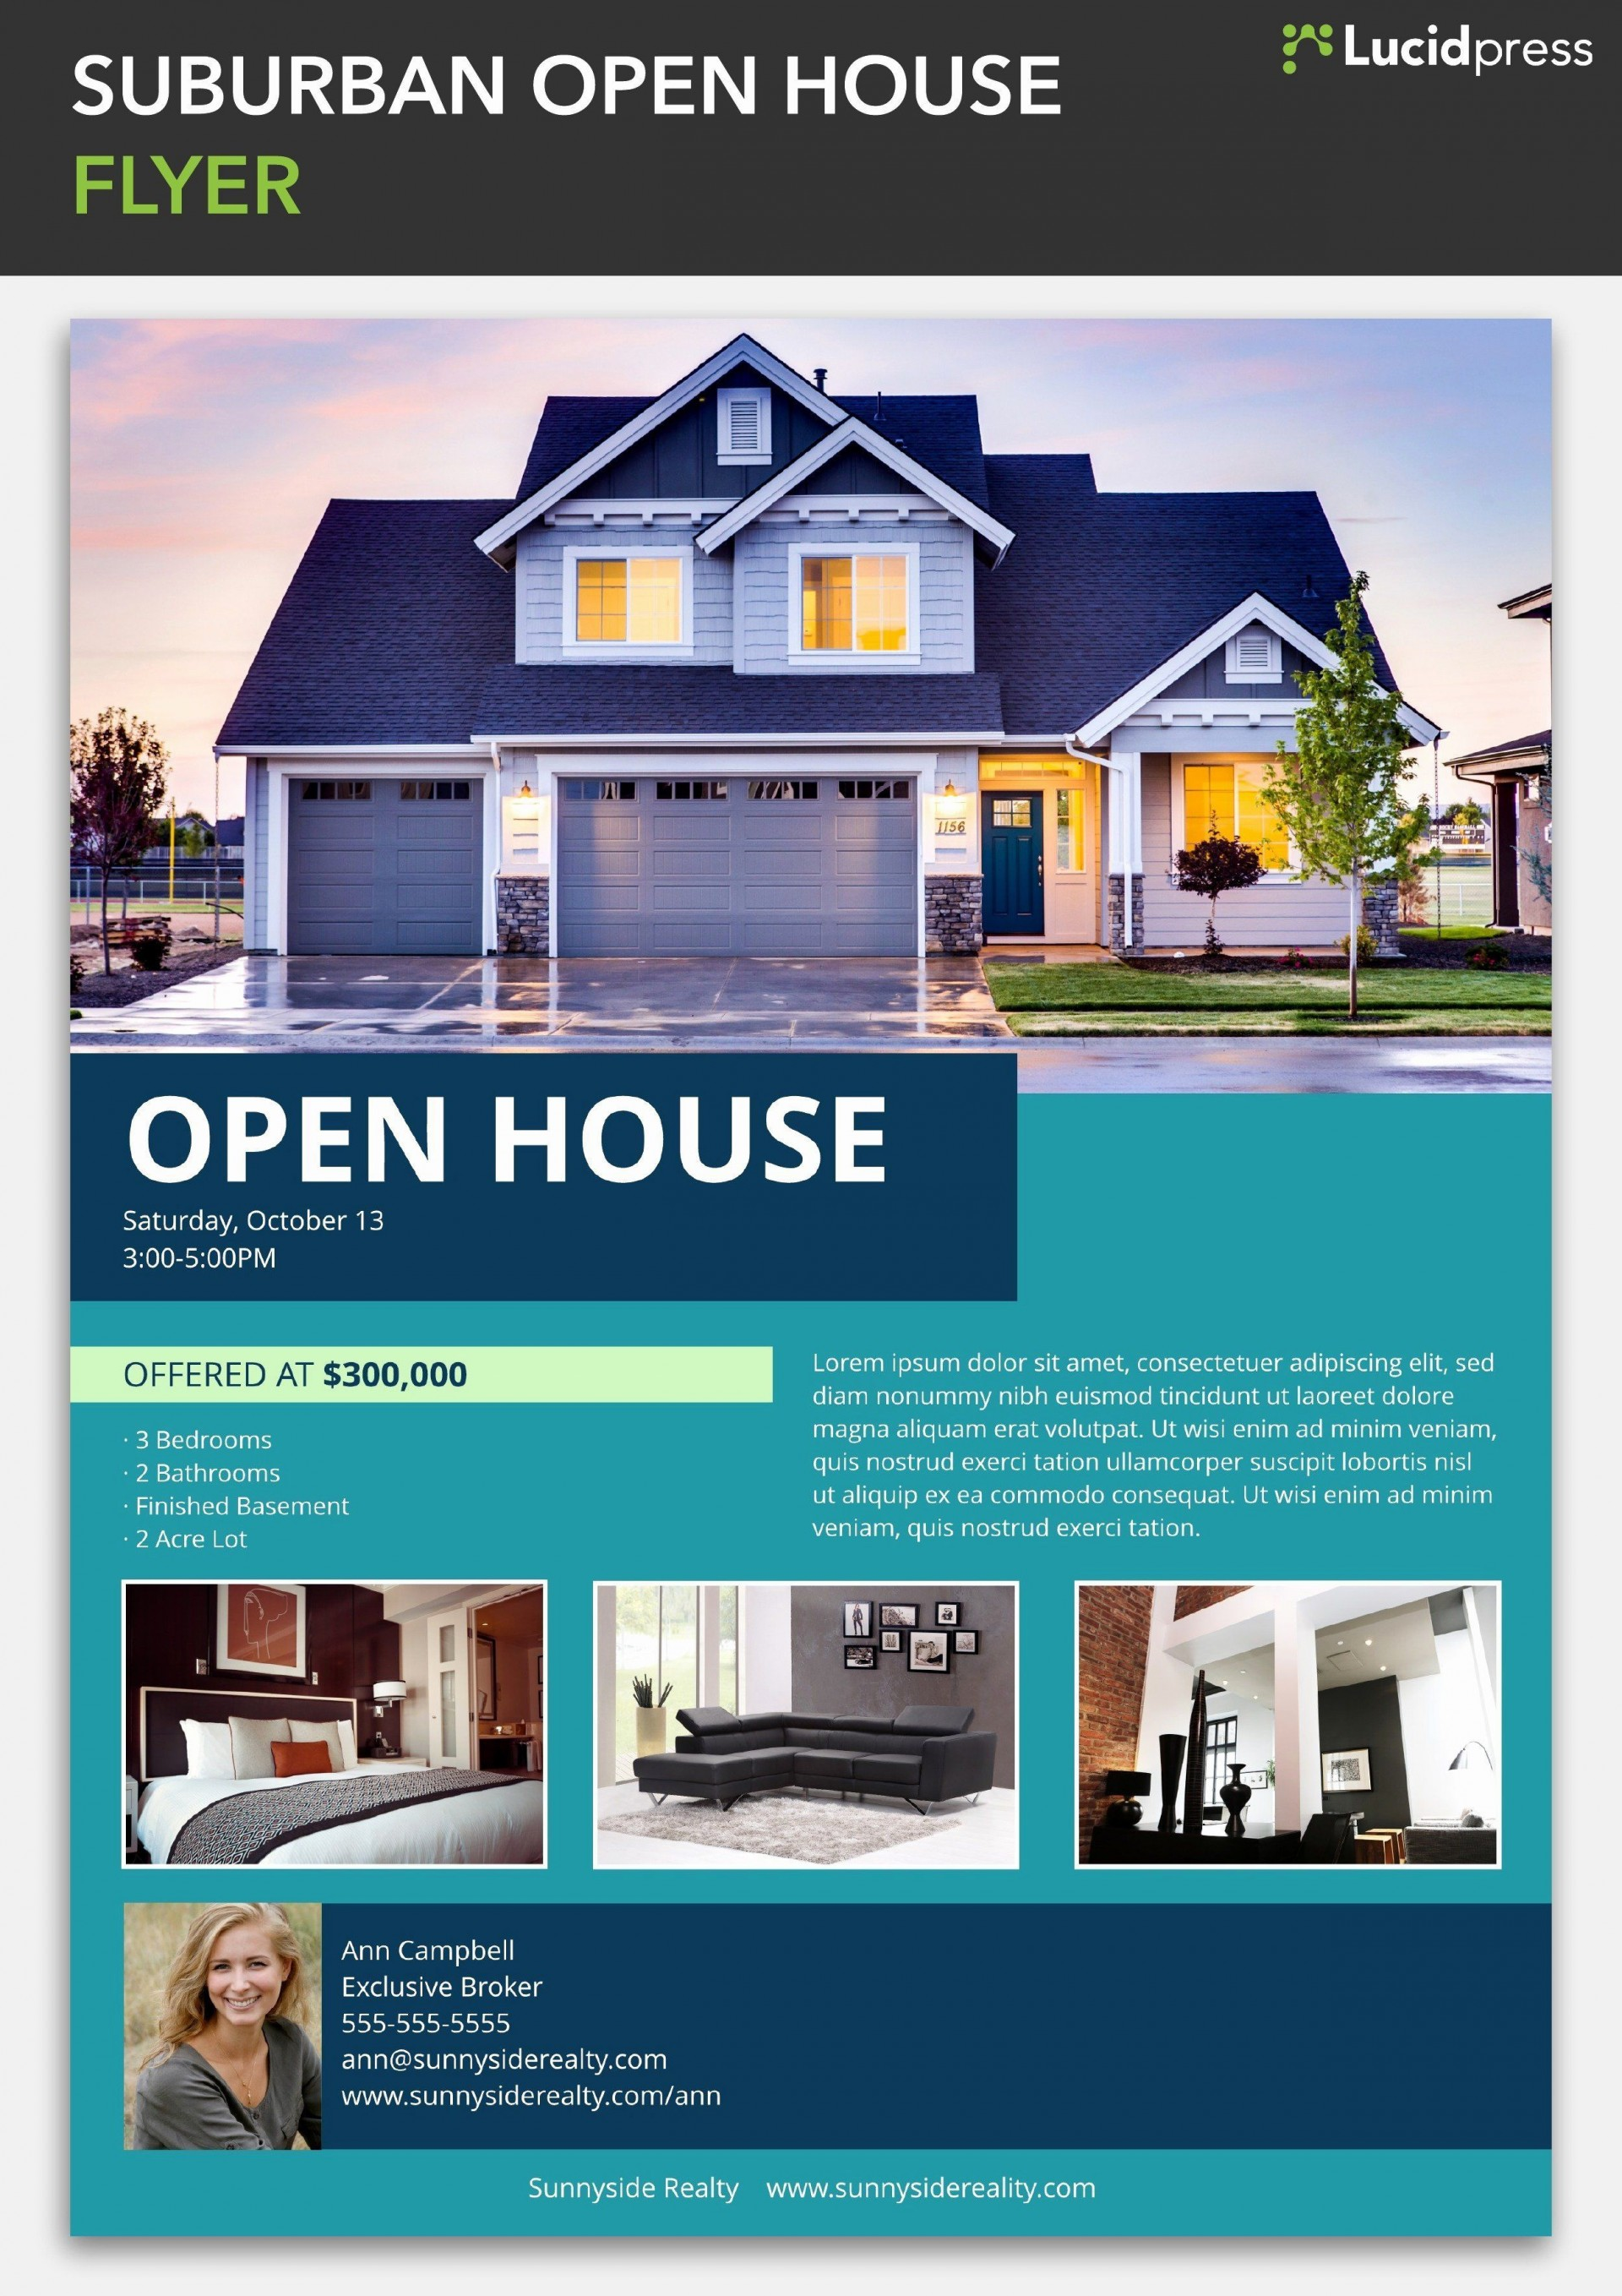 001 Awful Open House Flyer Template Highest Quality  Templates Free School Microsoft1920